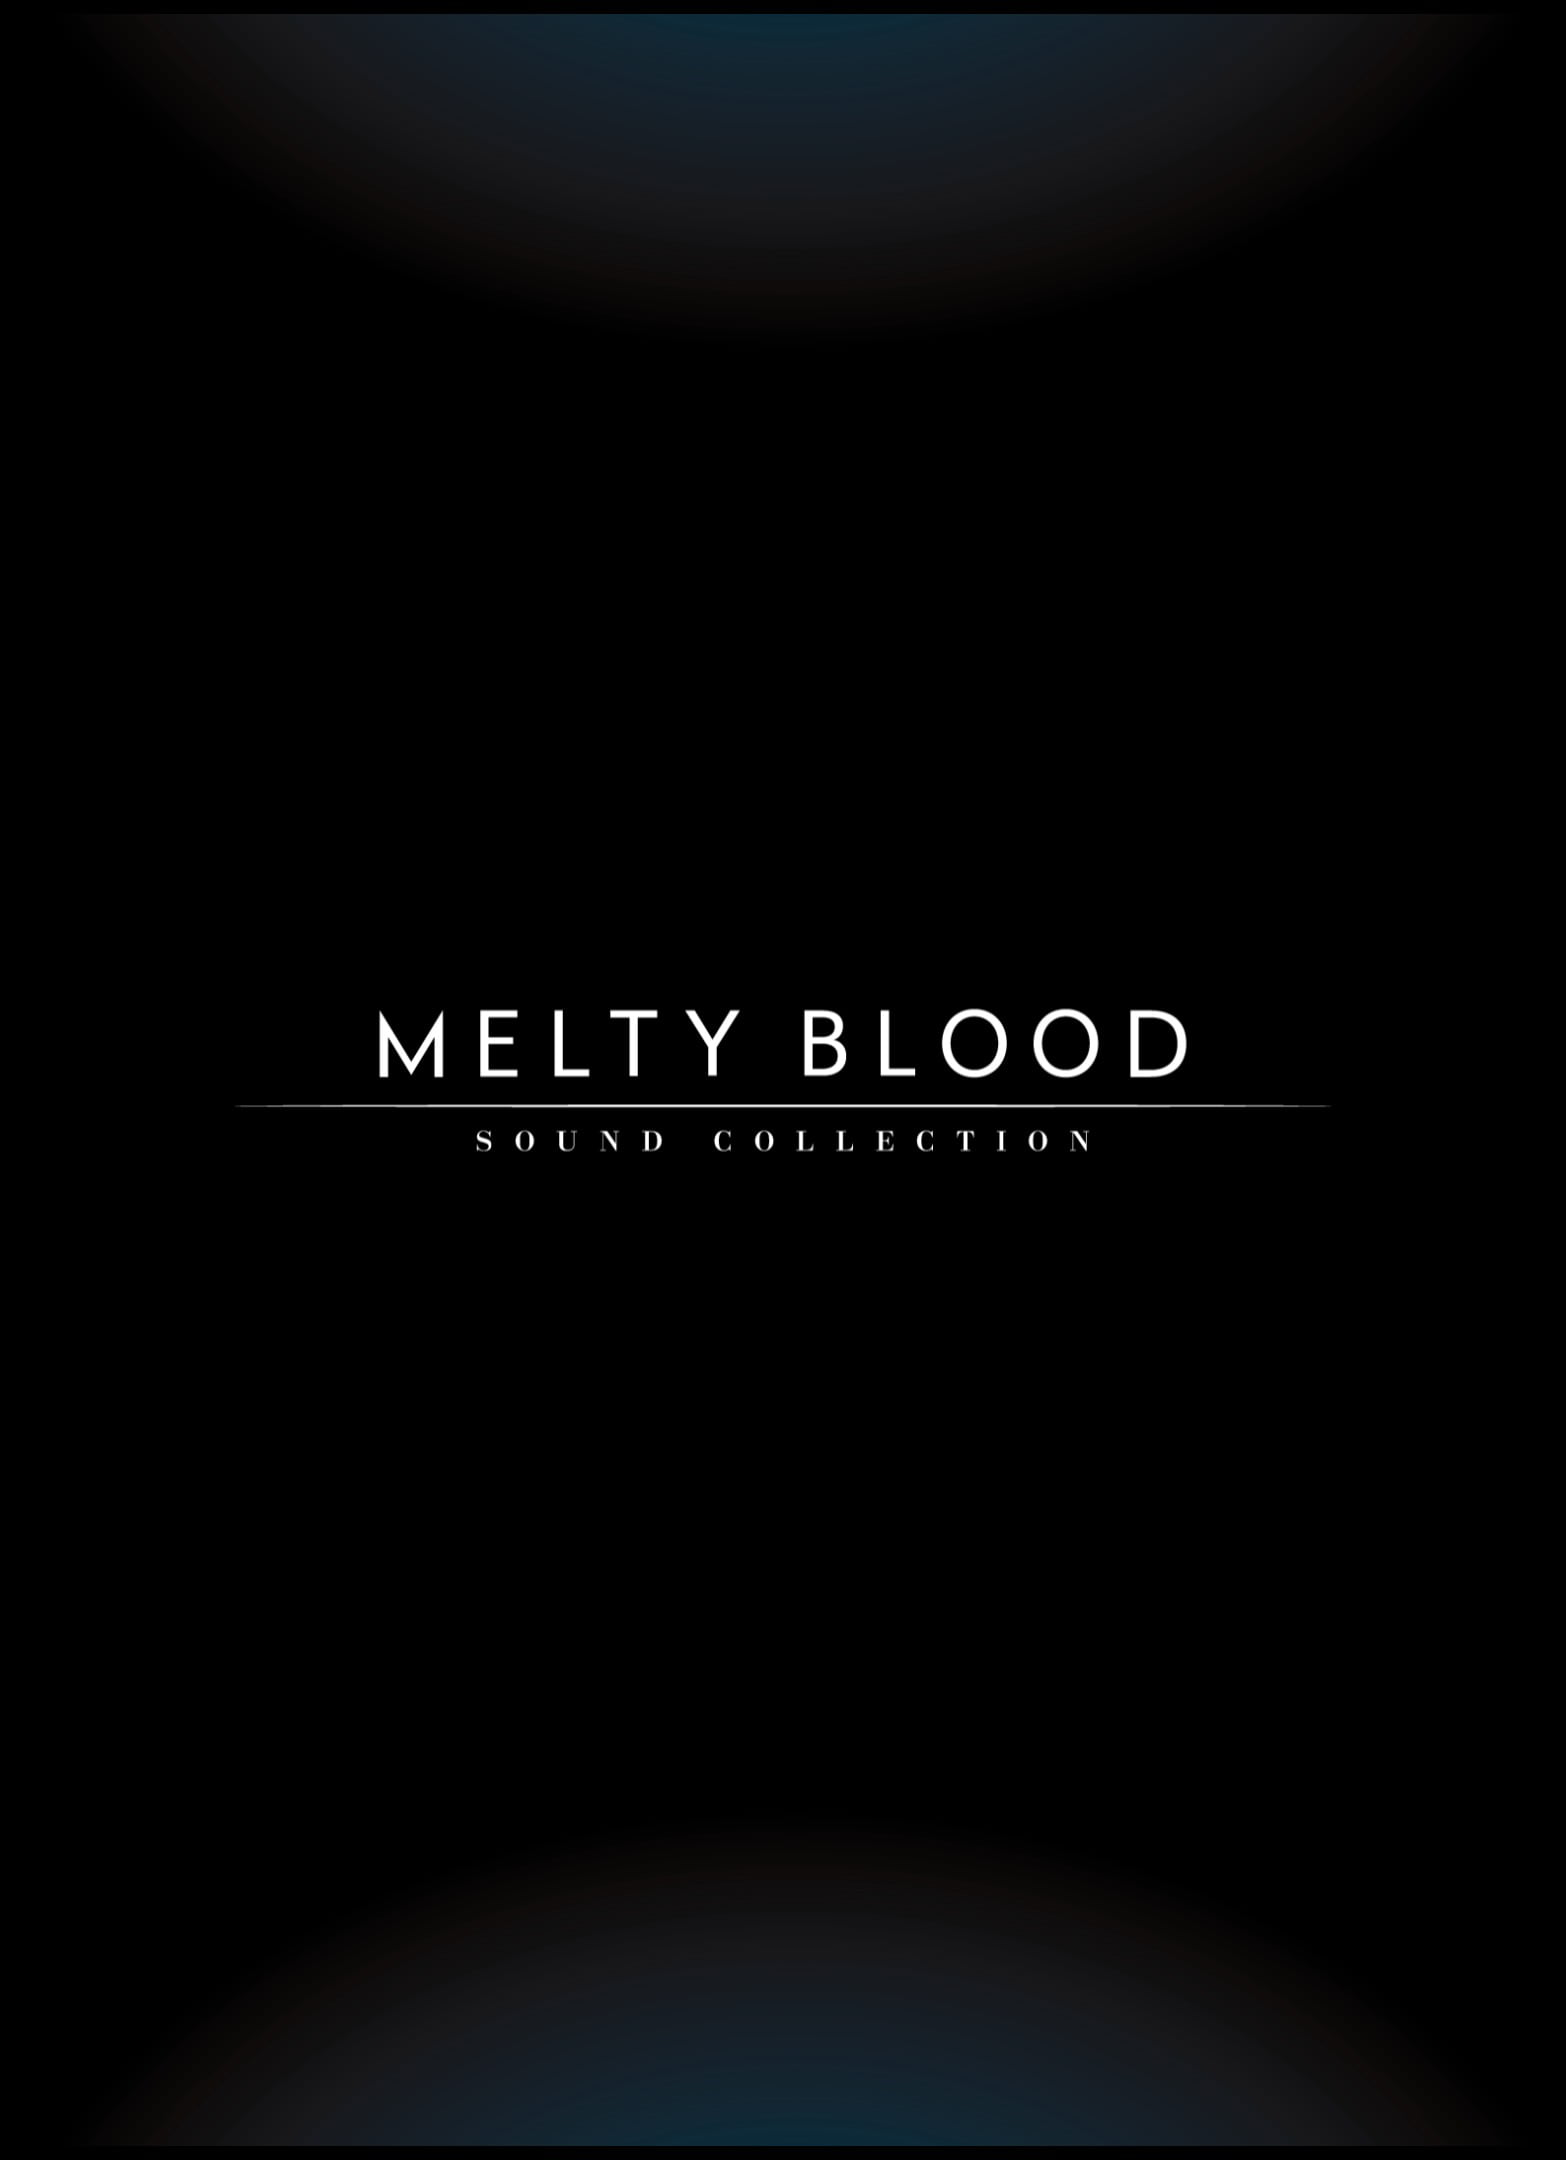 MELTY BLOOD SOUND COLLECTION